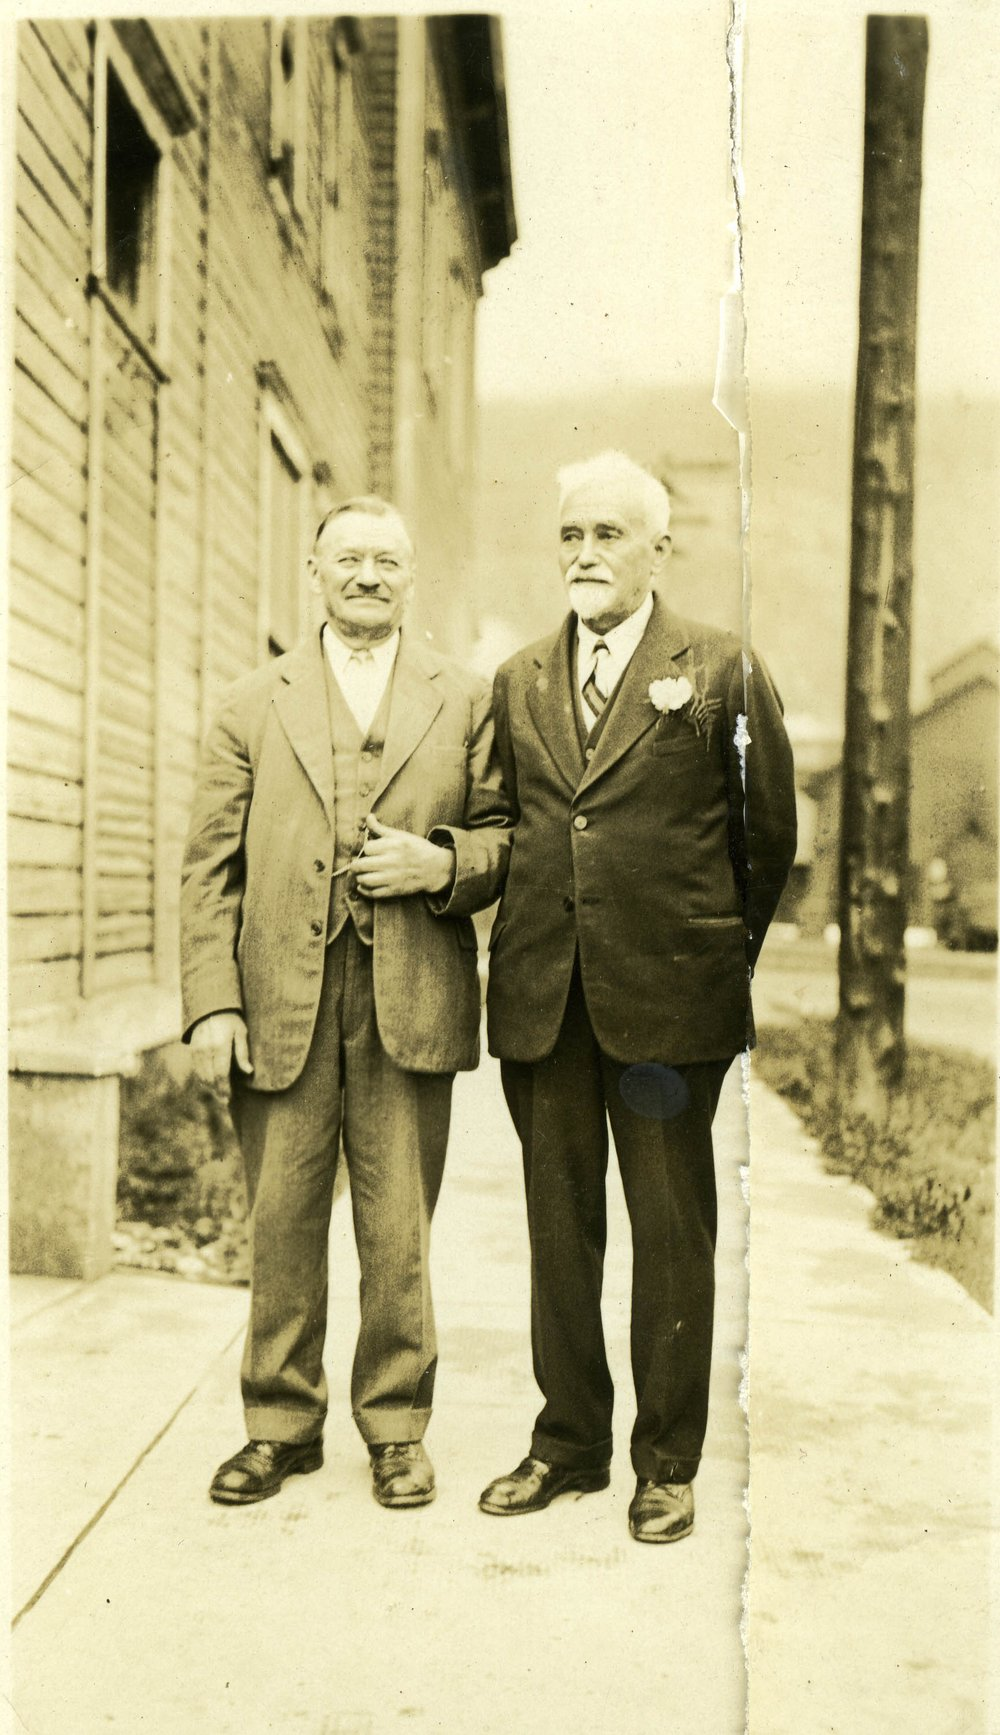 Dominic Gallicano (right) outside bakery, date unknown.